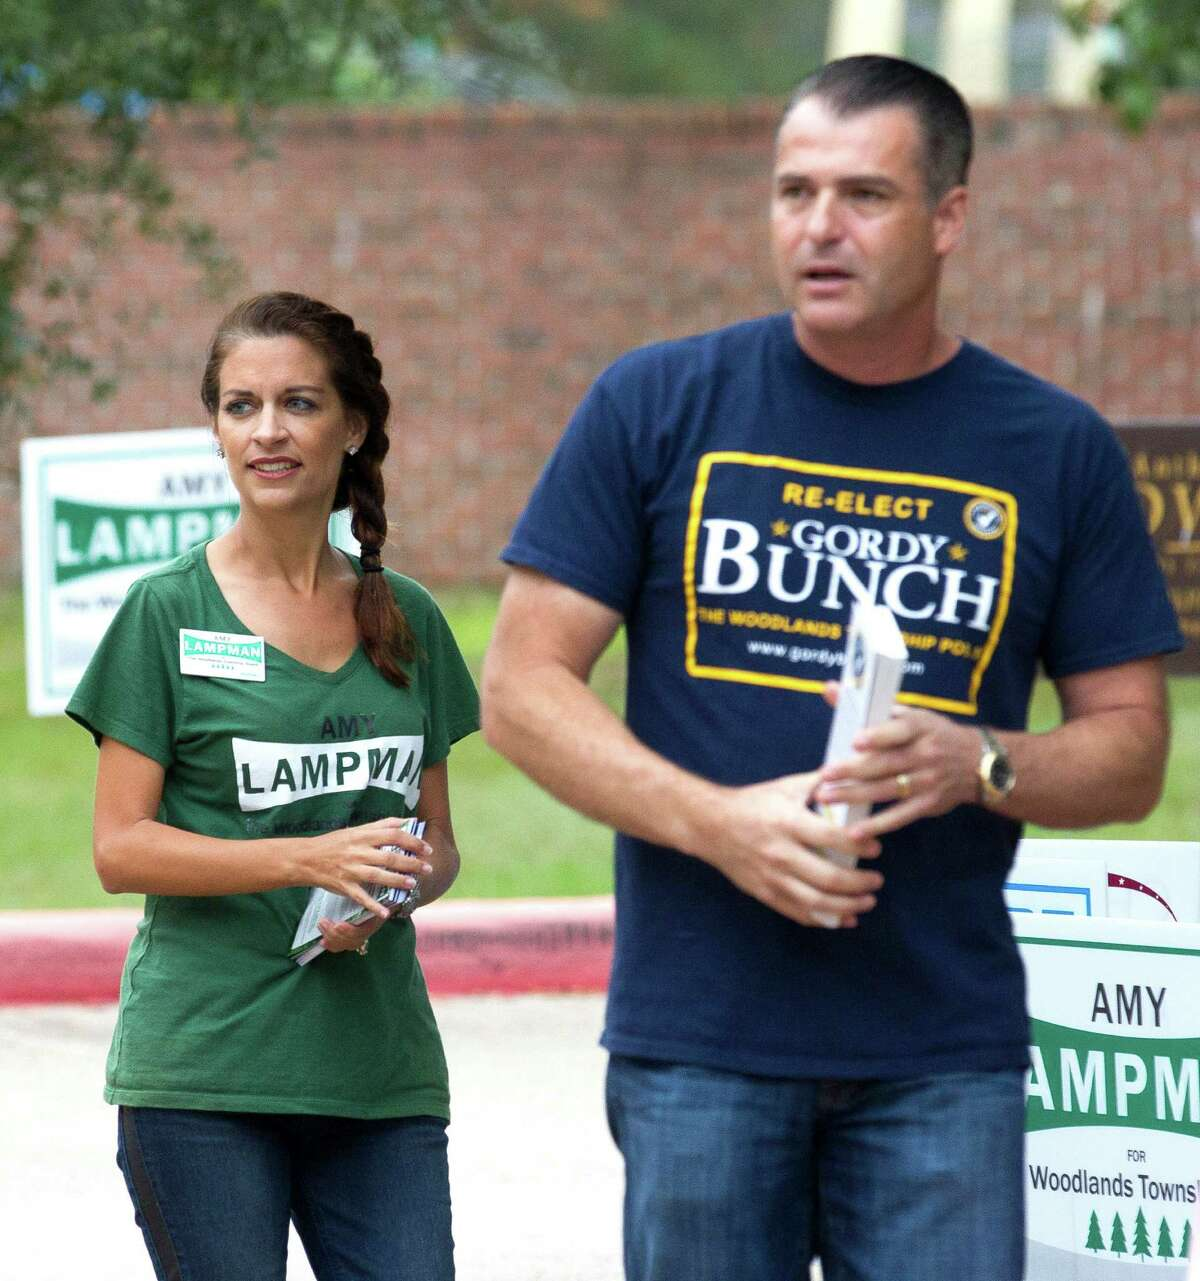 Gordy Bunch, incumbent candidate for The Woodlands Township Position 1, is seen along fellow candidate Amy Lampman as the two campaign outside the voting location at Galatas Elementary Tuesday, Nov. 8, 2016, in The Woodlands. Bunch and Lampman are running for Position 1 along with Bob Leilich.